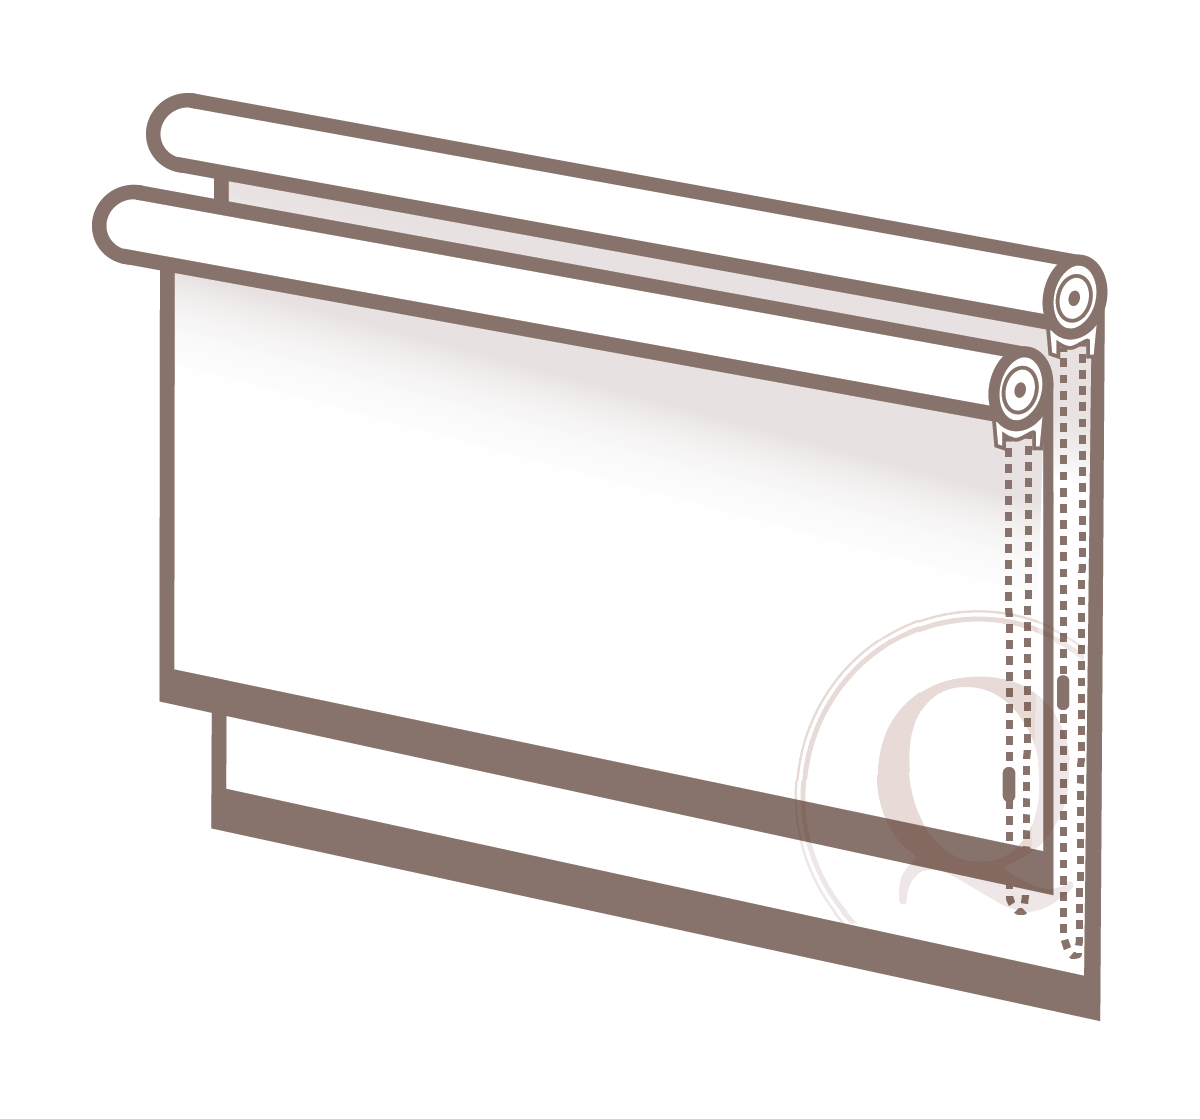 Dual shades - When two roller shades are mounted via one bracket at a window.